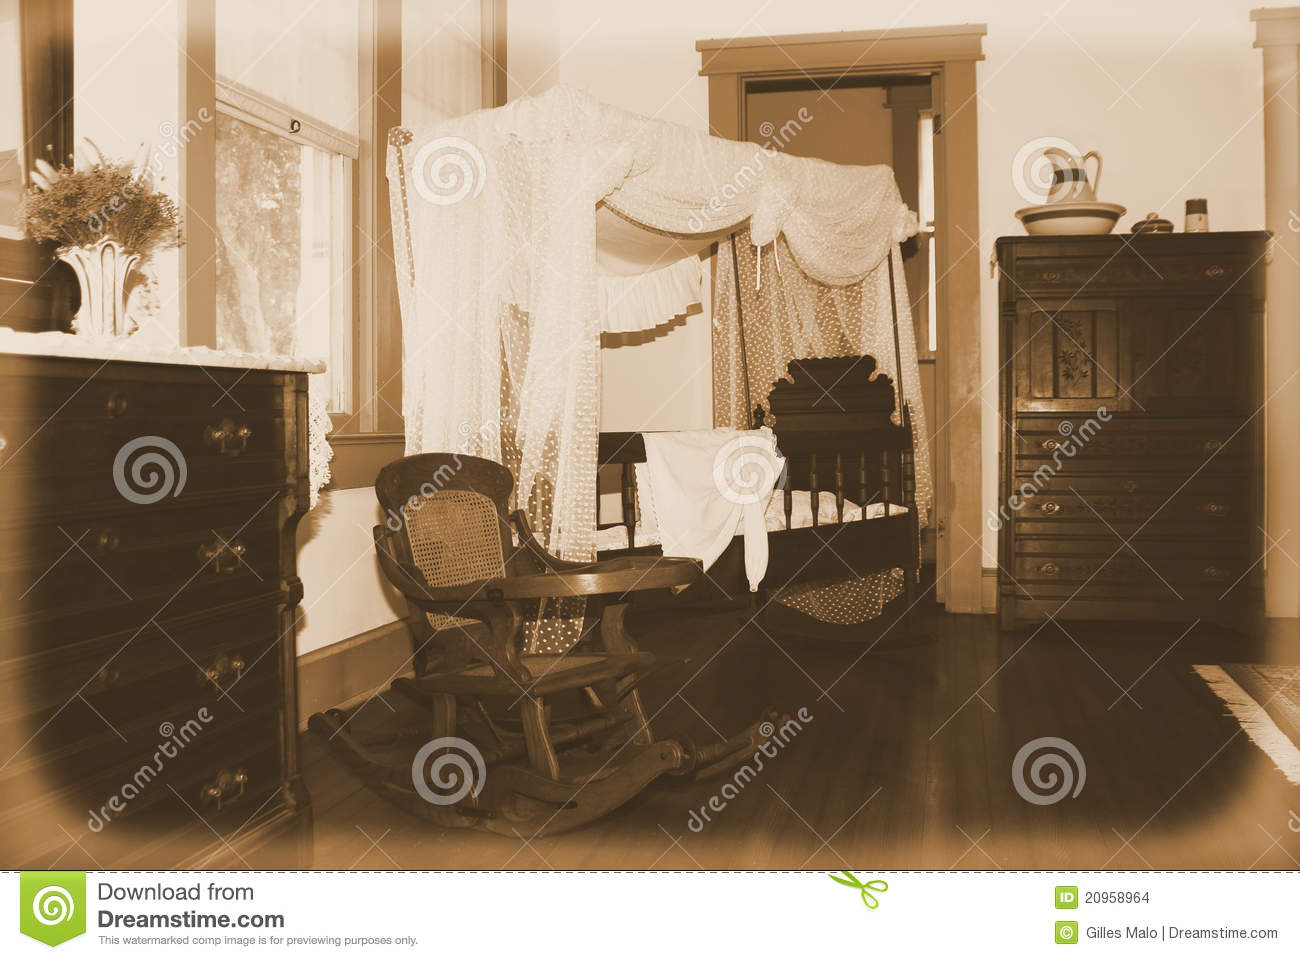 Retro Nursery Stock Images  Image 20958964